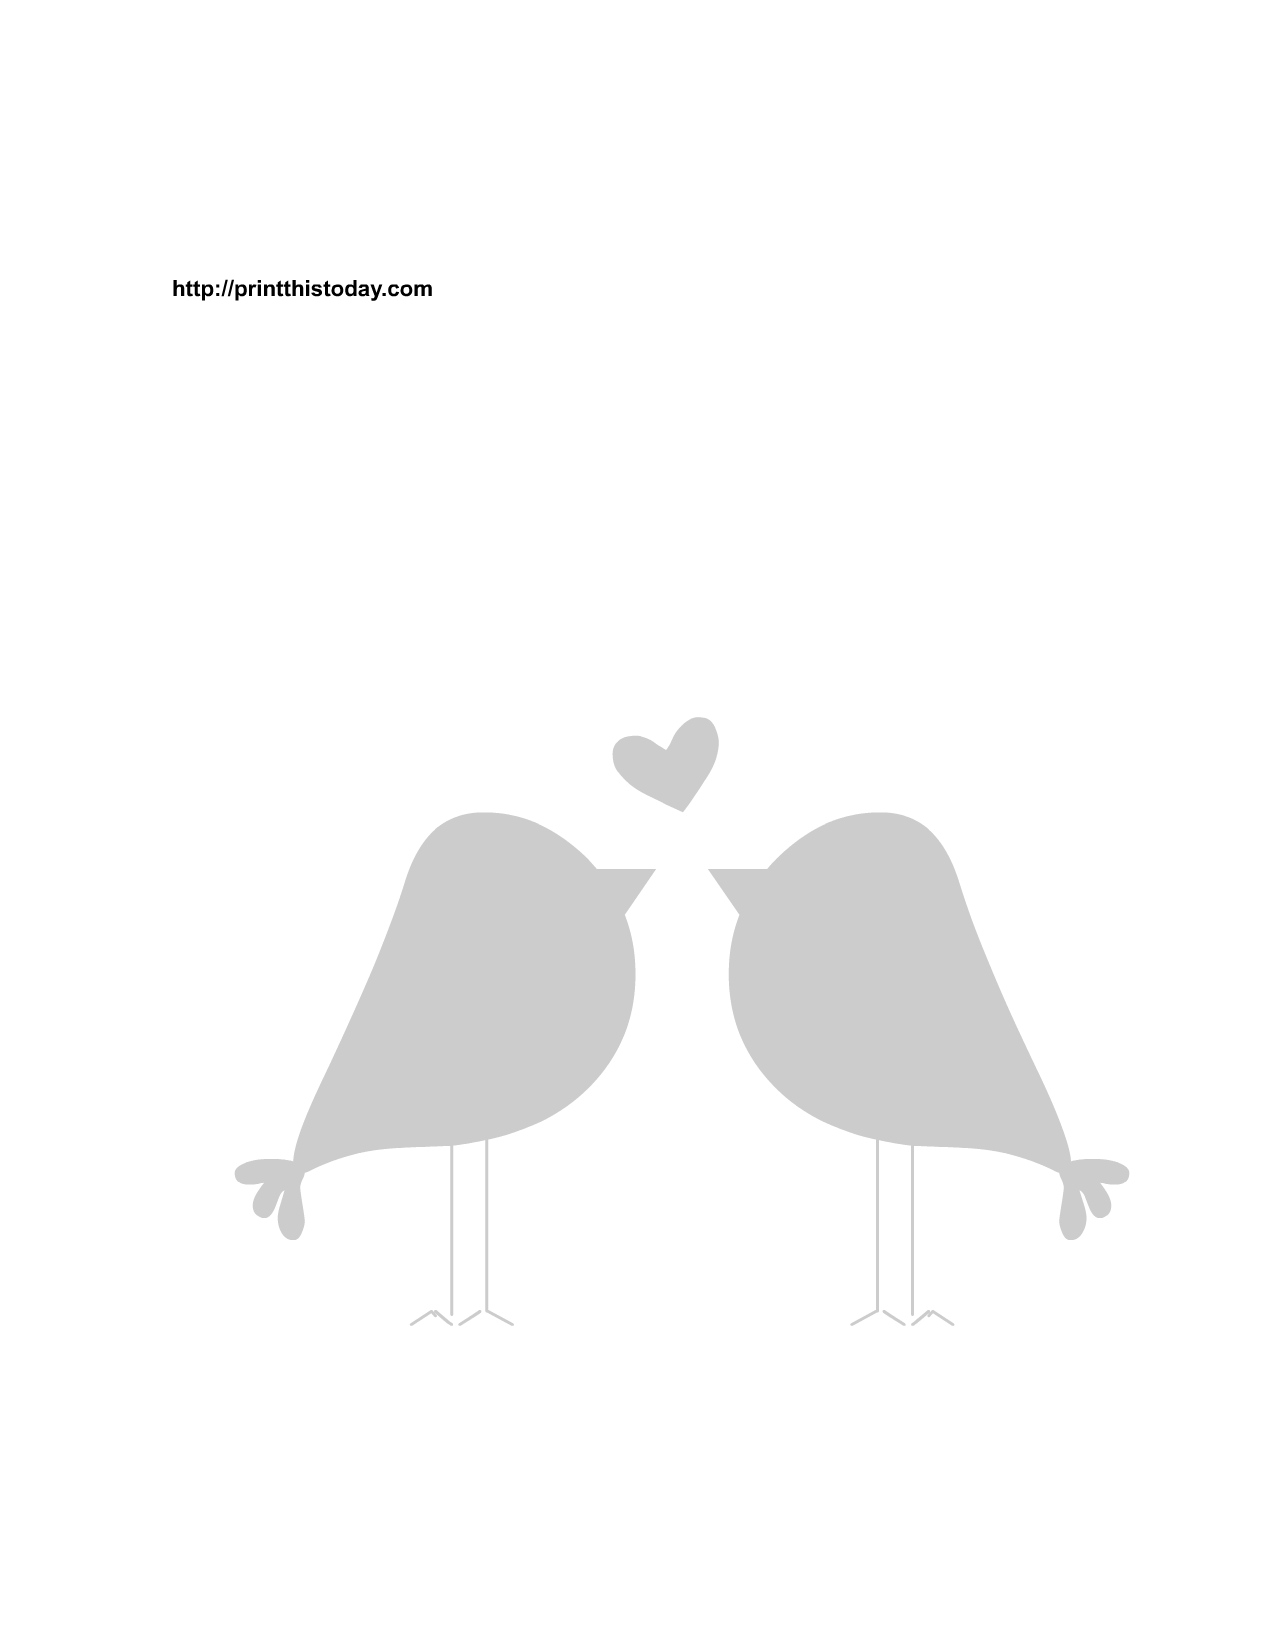 7 Images of Printable Love Birds Art